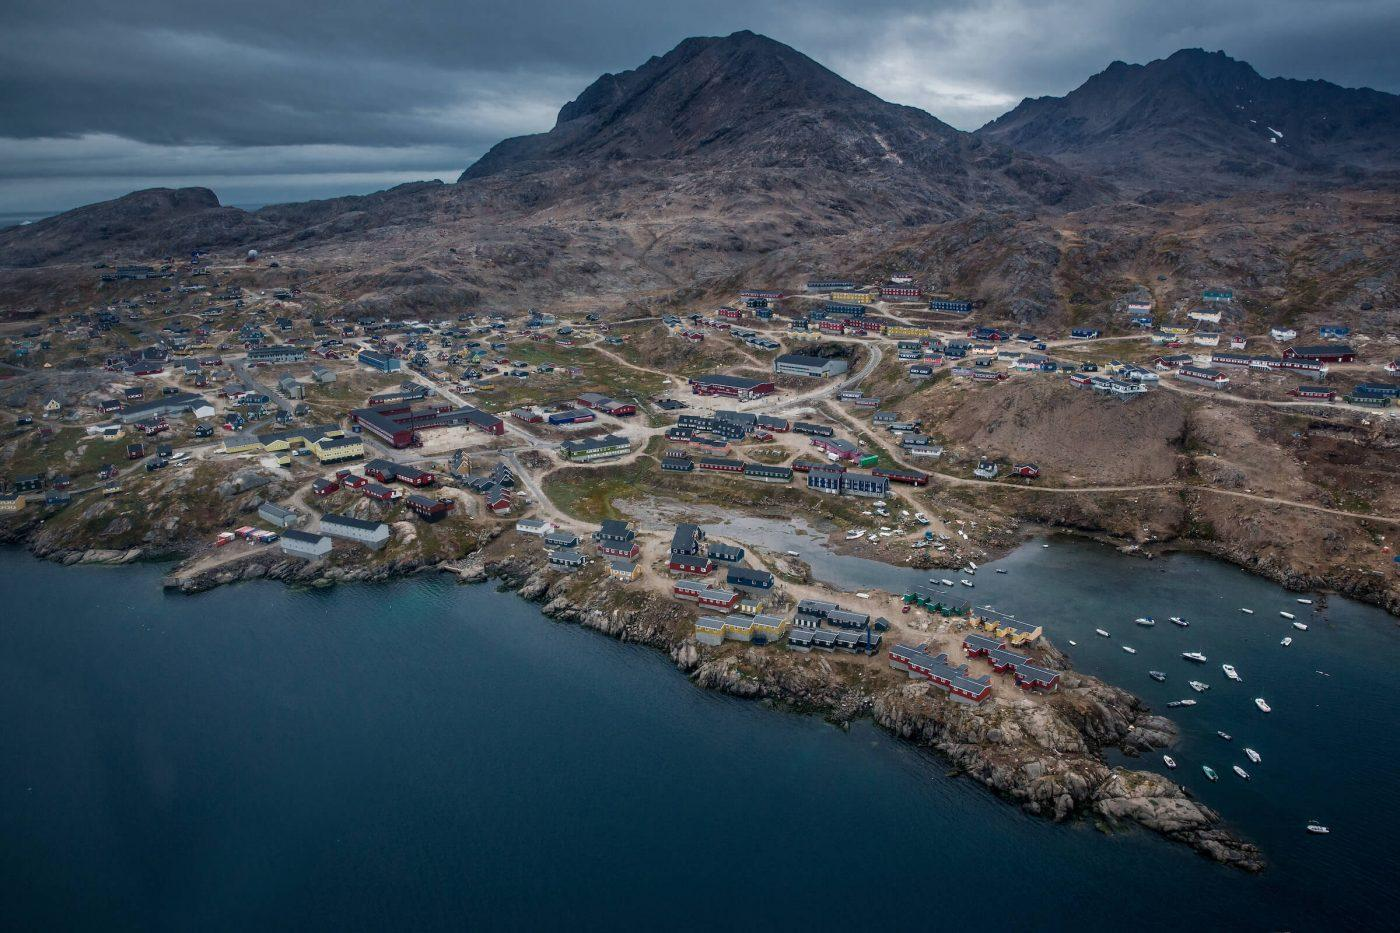 An aerial view of Tasiilaq seen from a flightseeing trip with Air Greenland in East Greenland. Photo by Mads Pihl, Visit Greenland